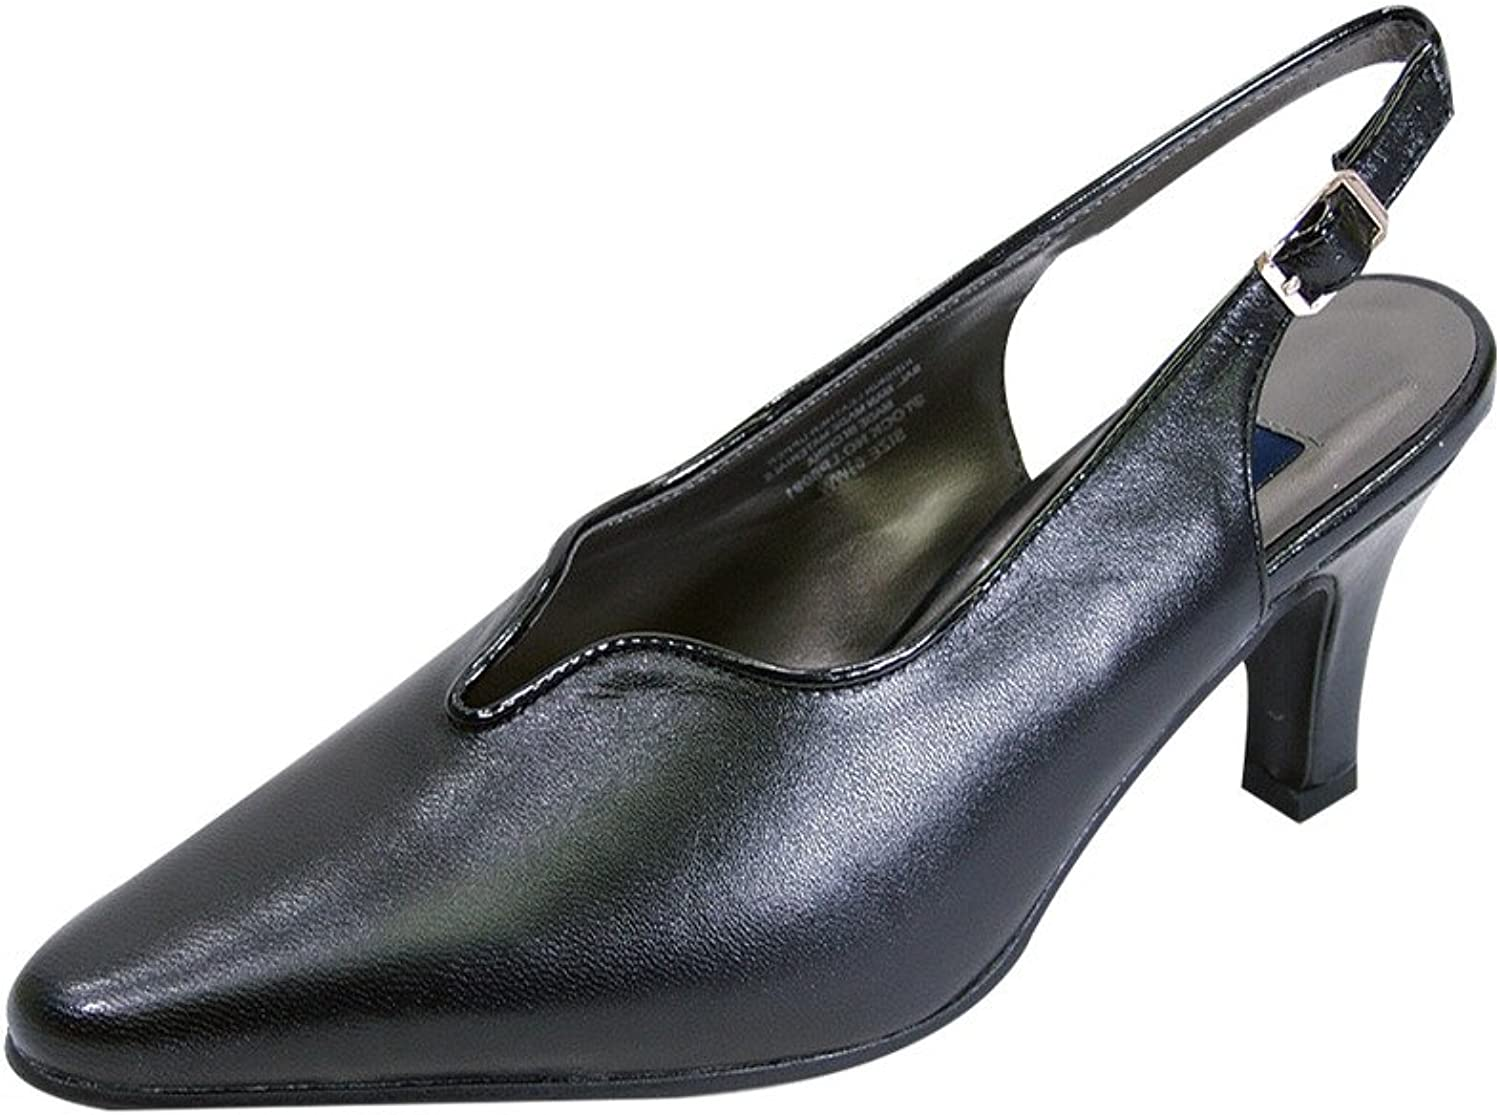 Peerage FIC Hope Women Wide Width Pointed Toe Dress Pump (Size and Measurement Guides Available)